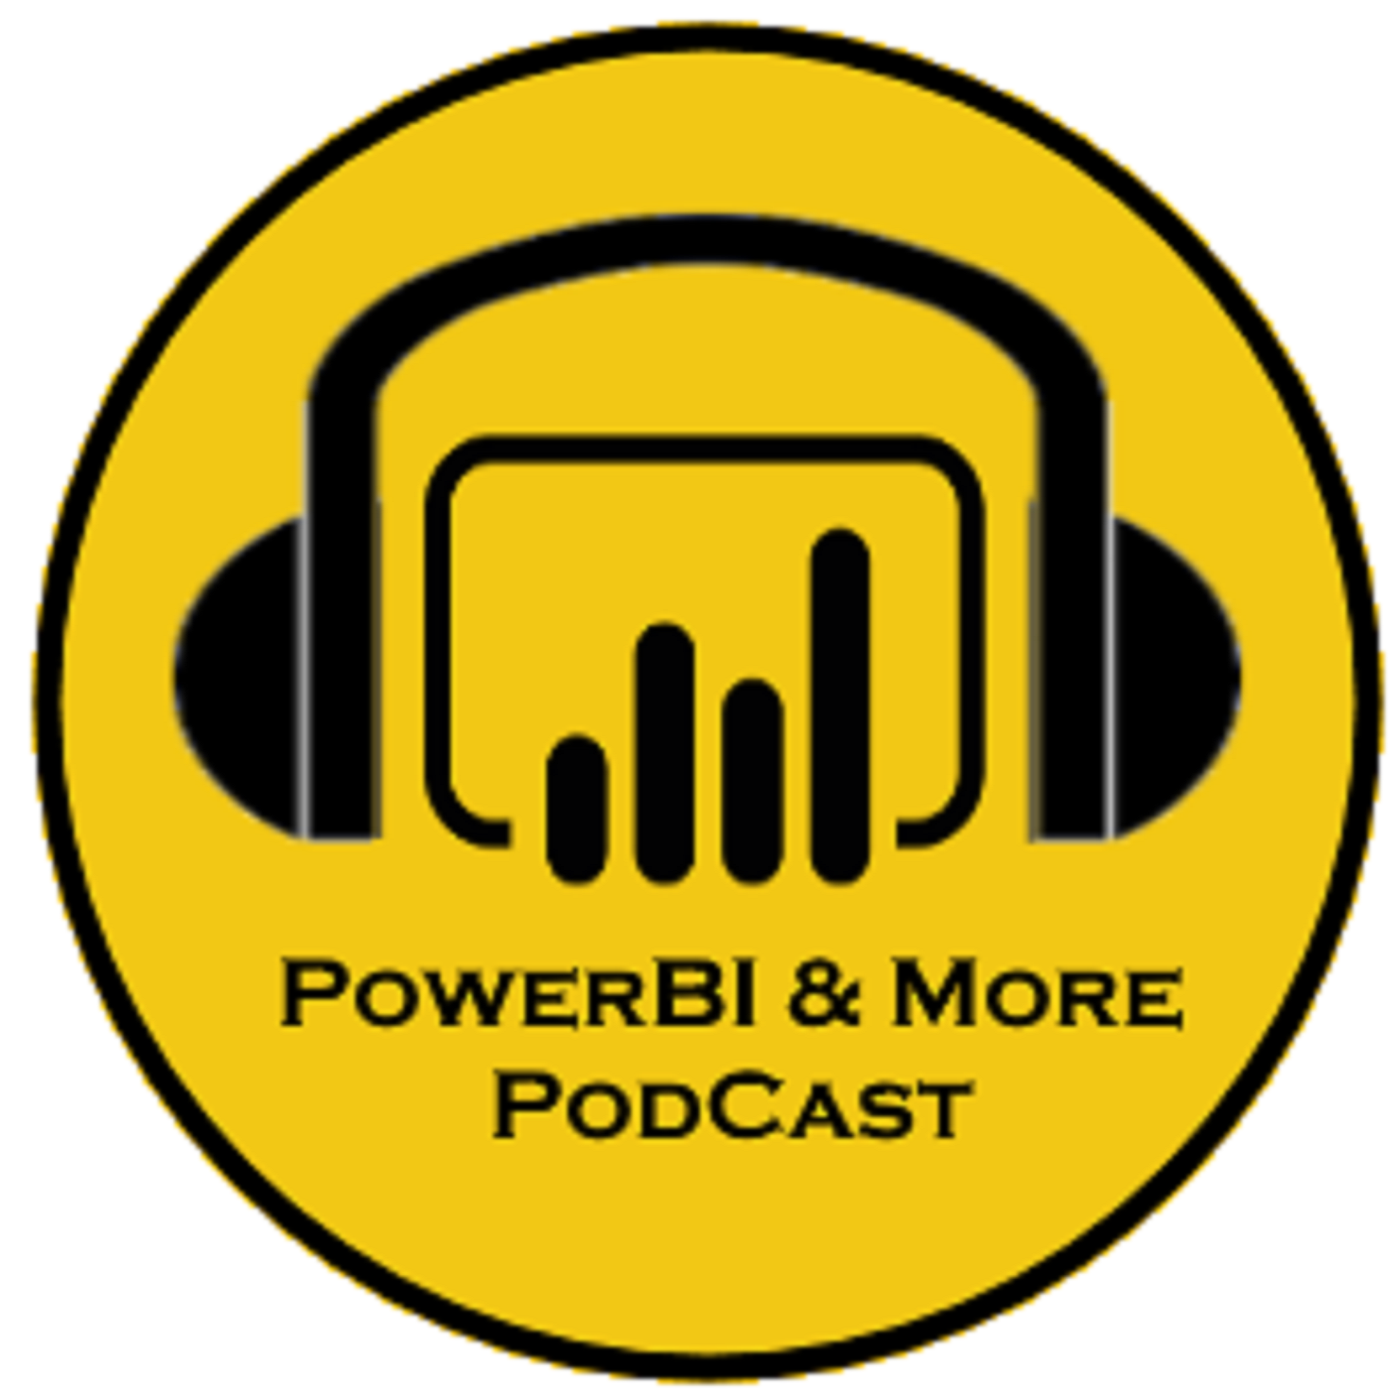 Power BI & More